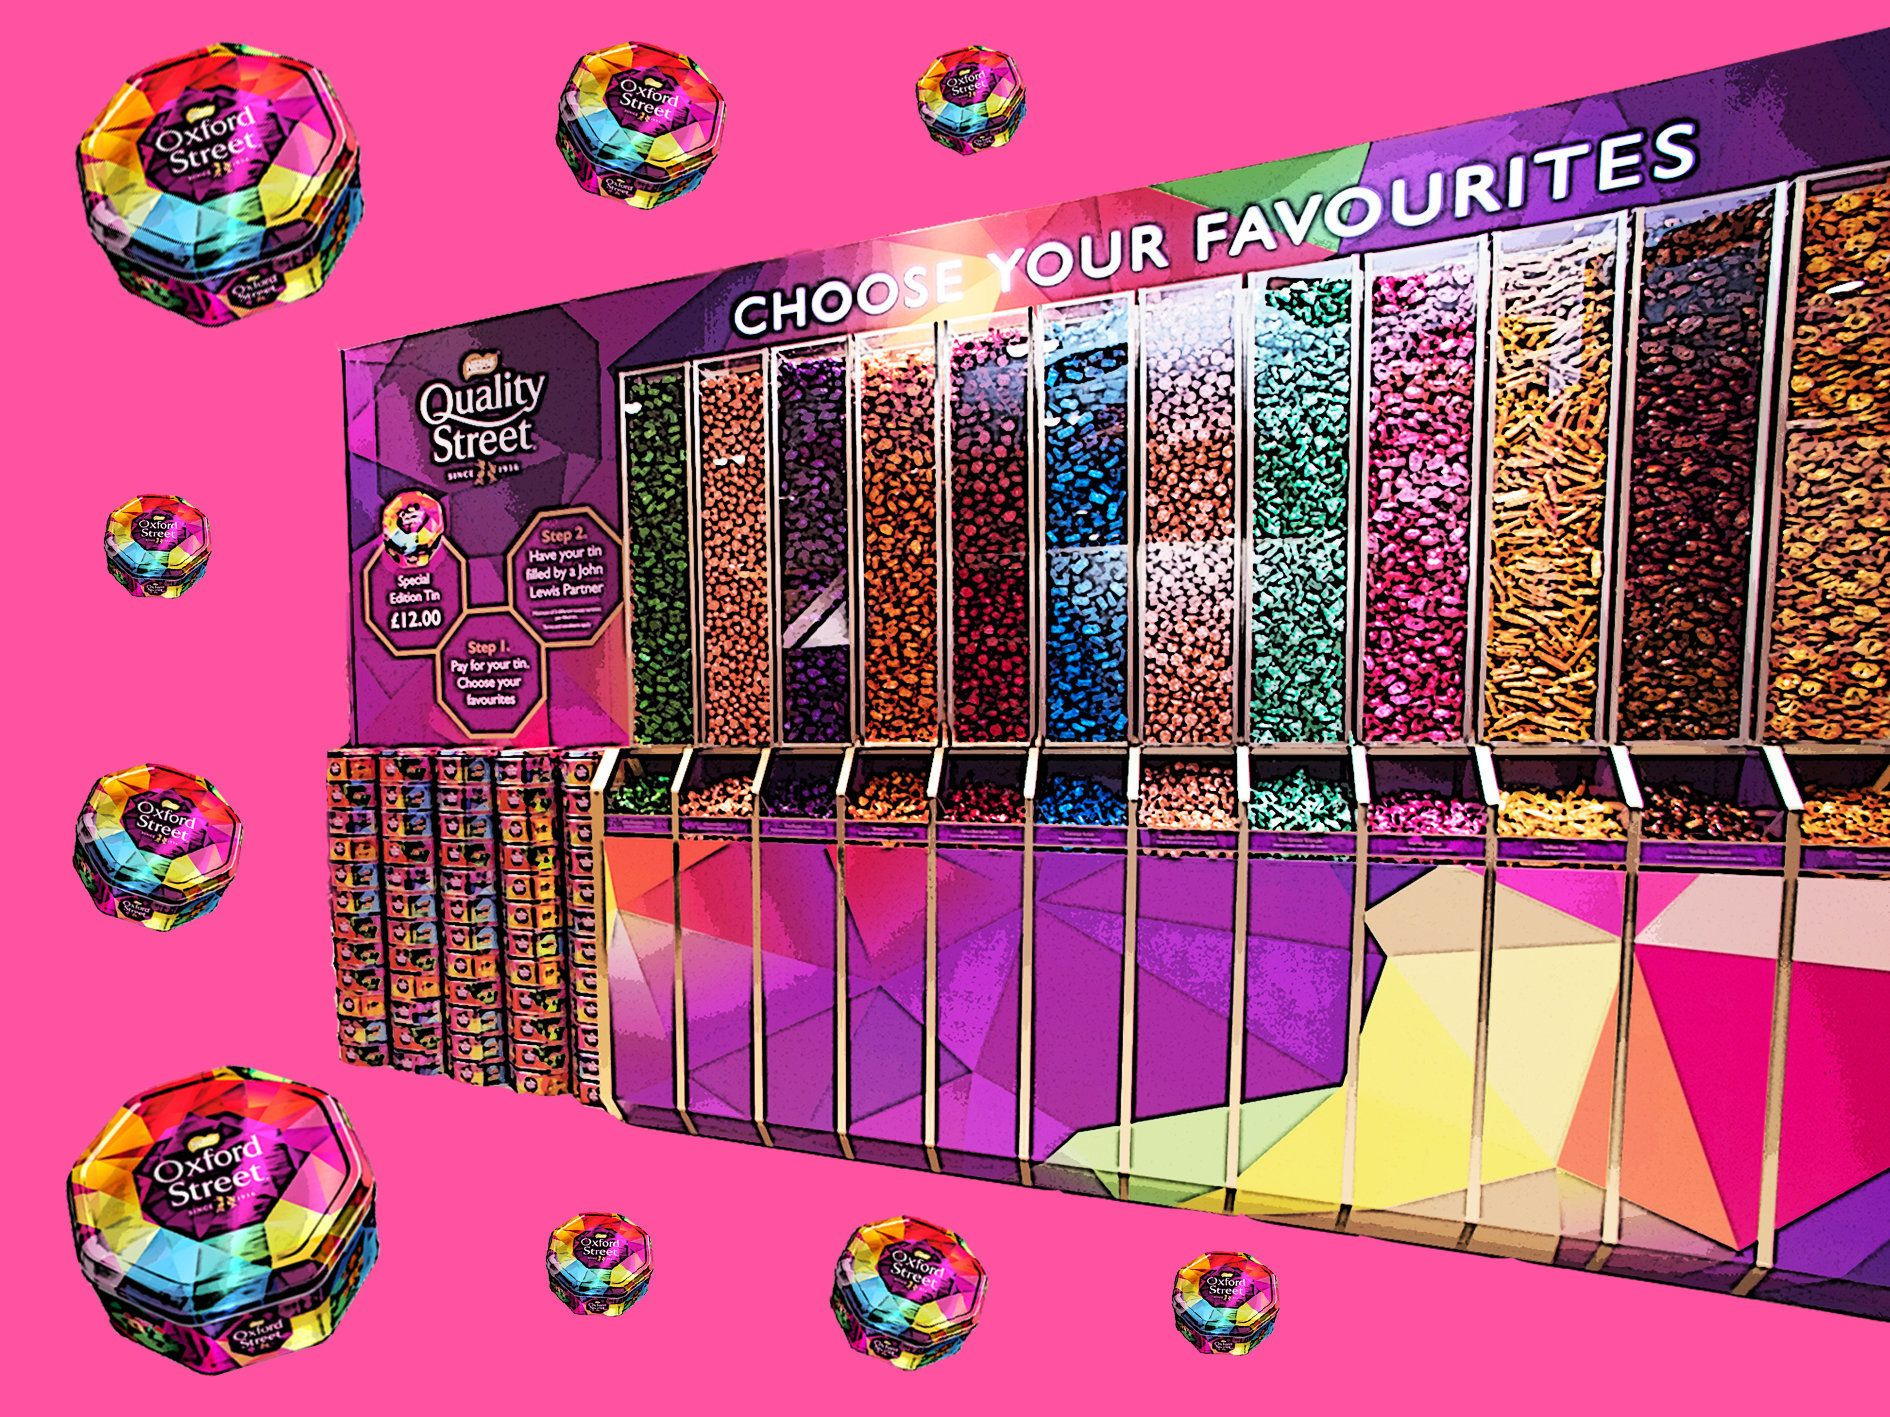 Pick 'N' Mix Your Own Quality Street Tin At John Lewis This